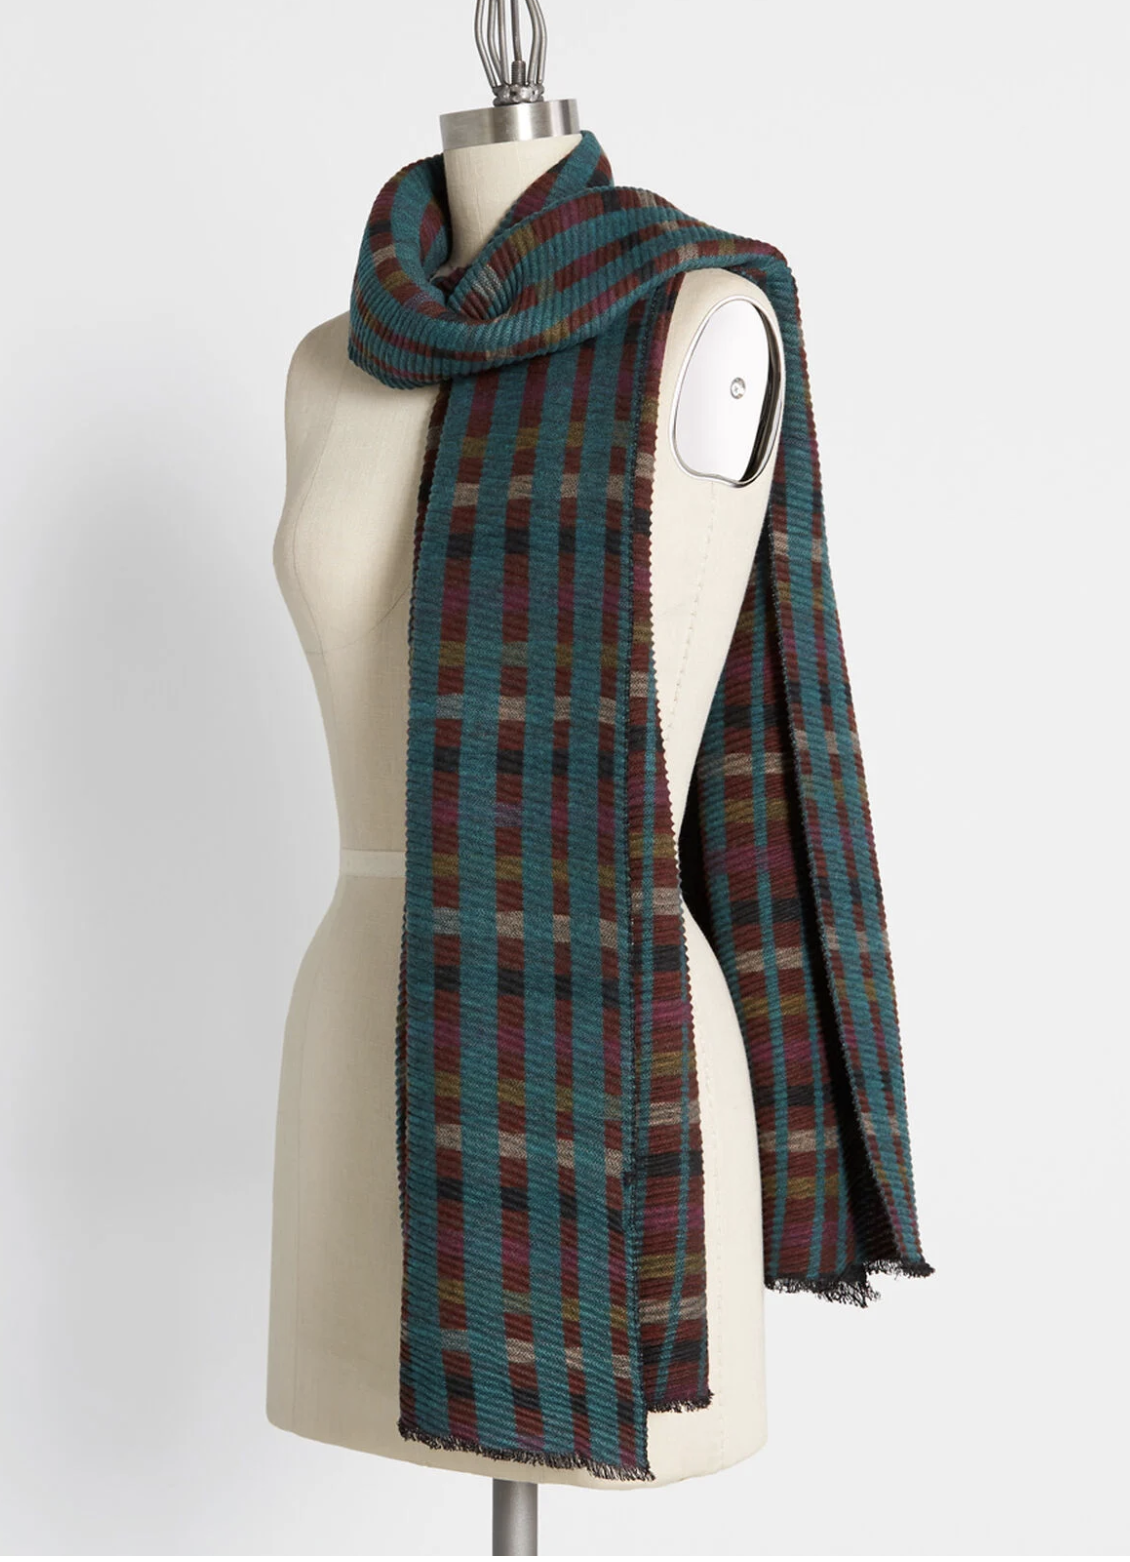 A long plaid scarf with dark green, purple, brown, and beige tones